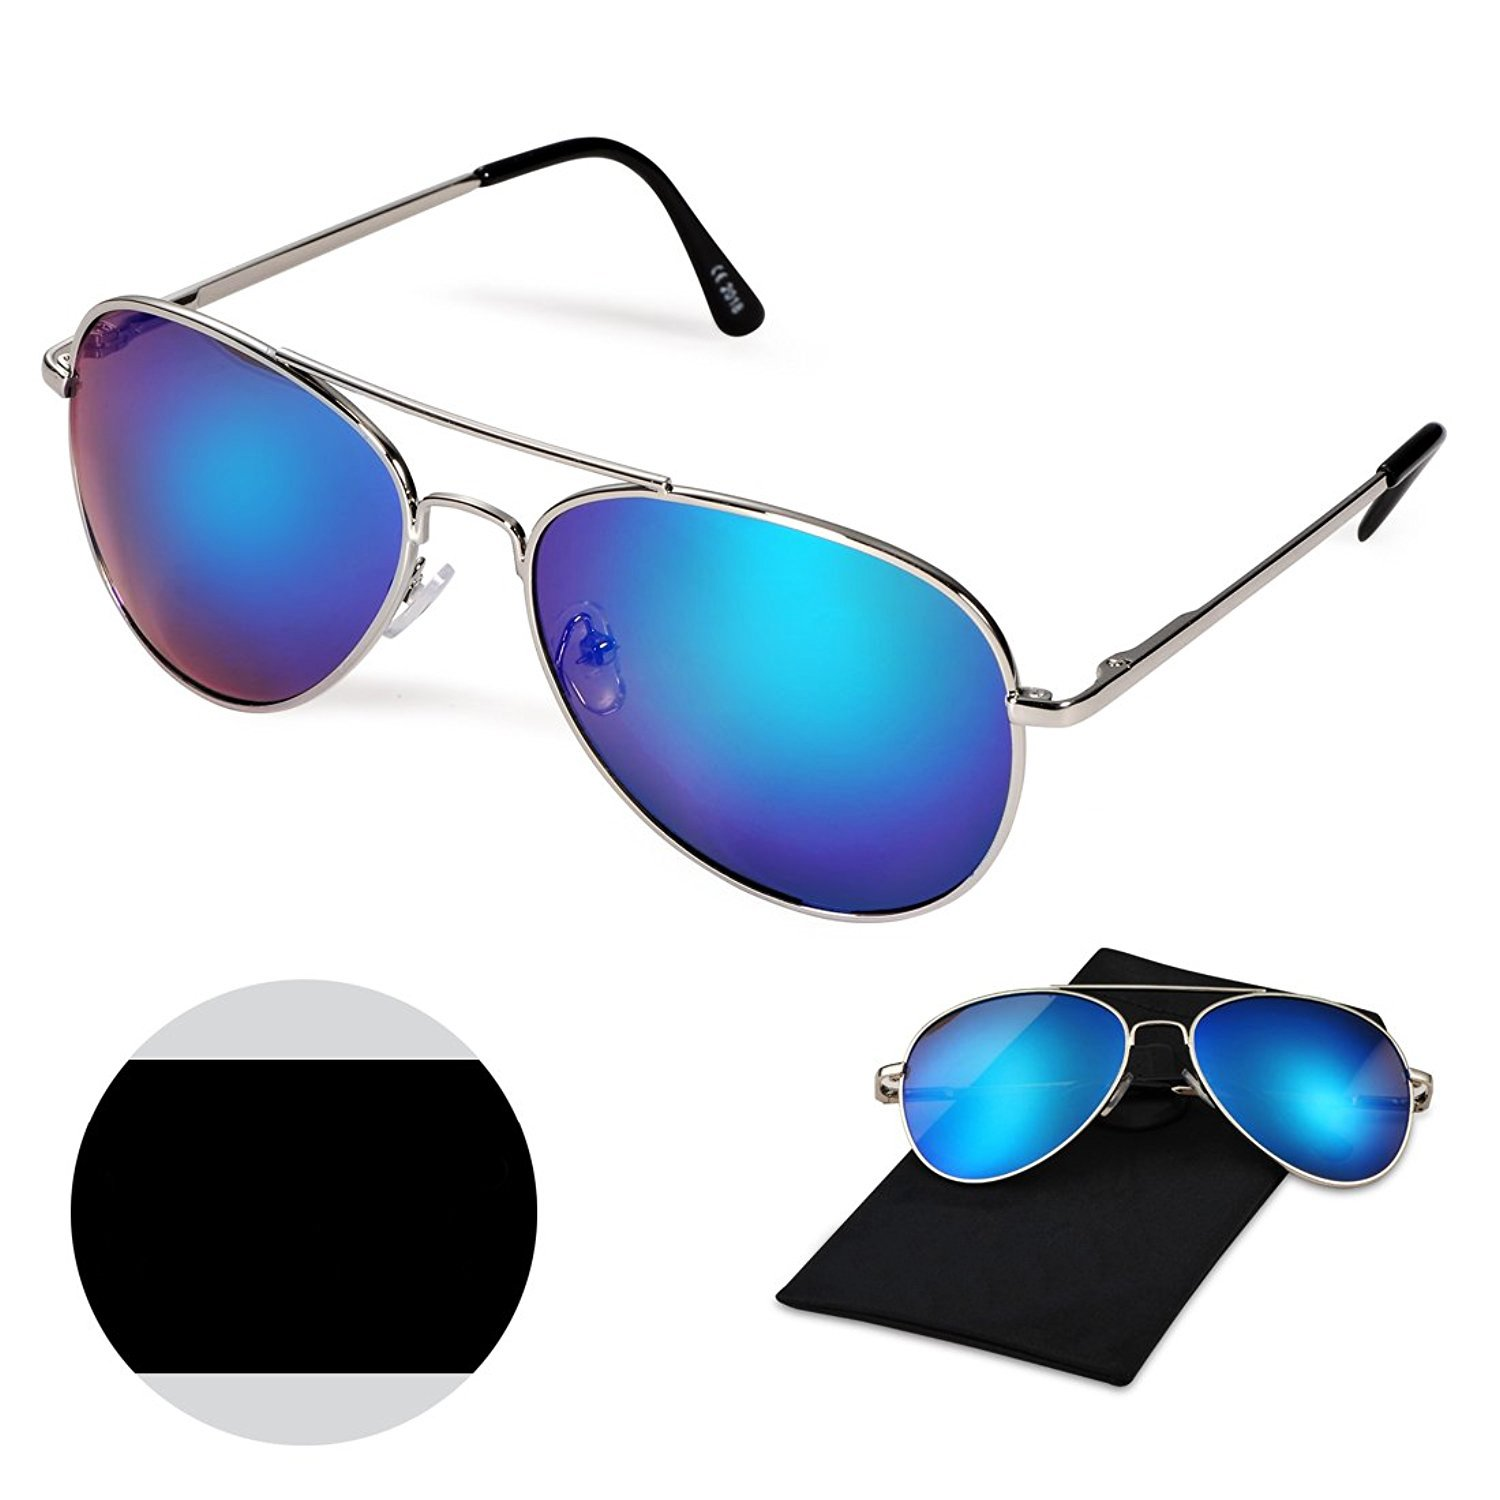 Classic Aviator Style Sunglasses, WITERY Premium Full Mirrored Aviator Metal Frame Polarized Sunglasses Flat Matte Reflective Lens UV400 Protection